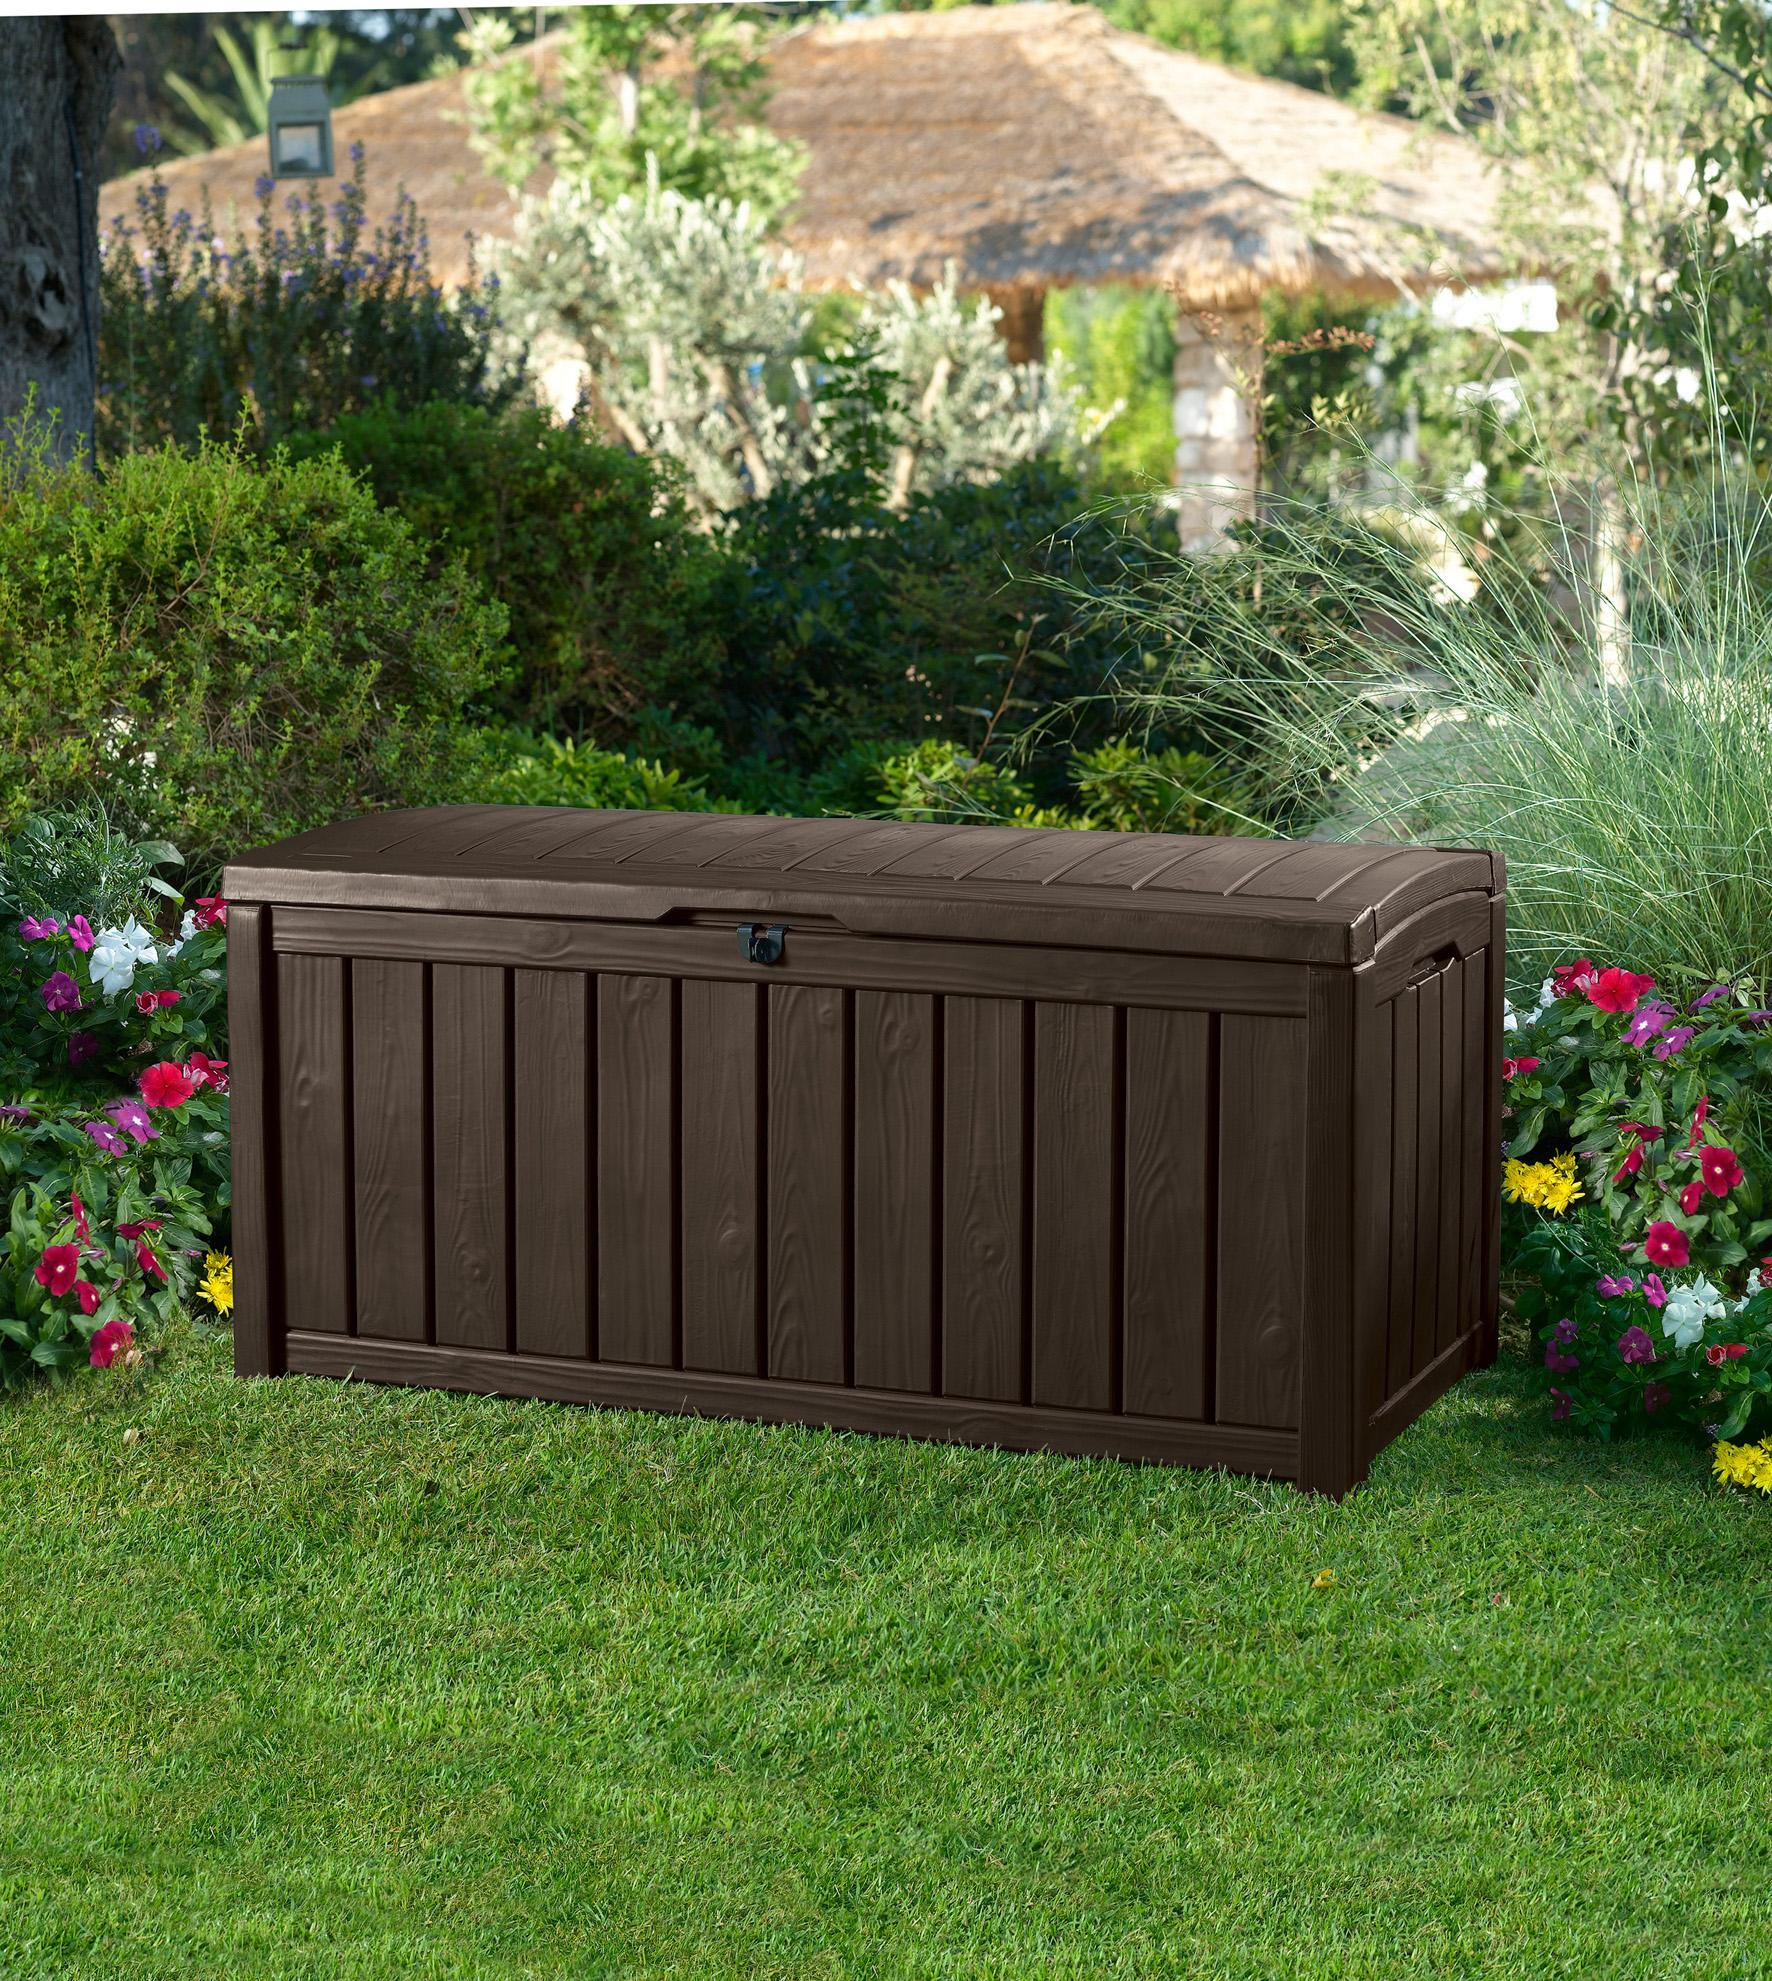 Keter Glenwood Plastic Deck Storage Container Box Outdoor Patio